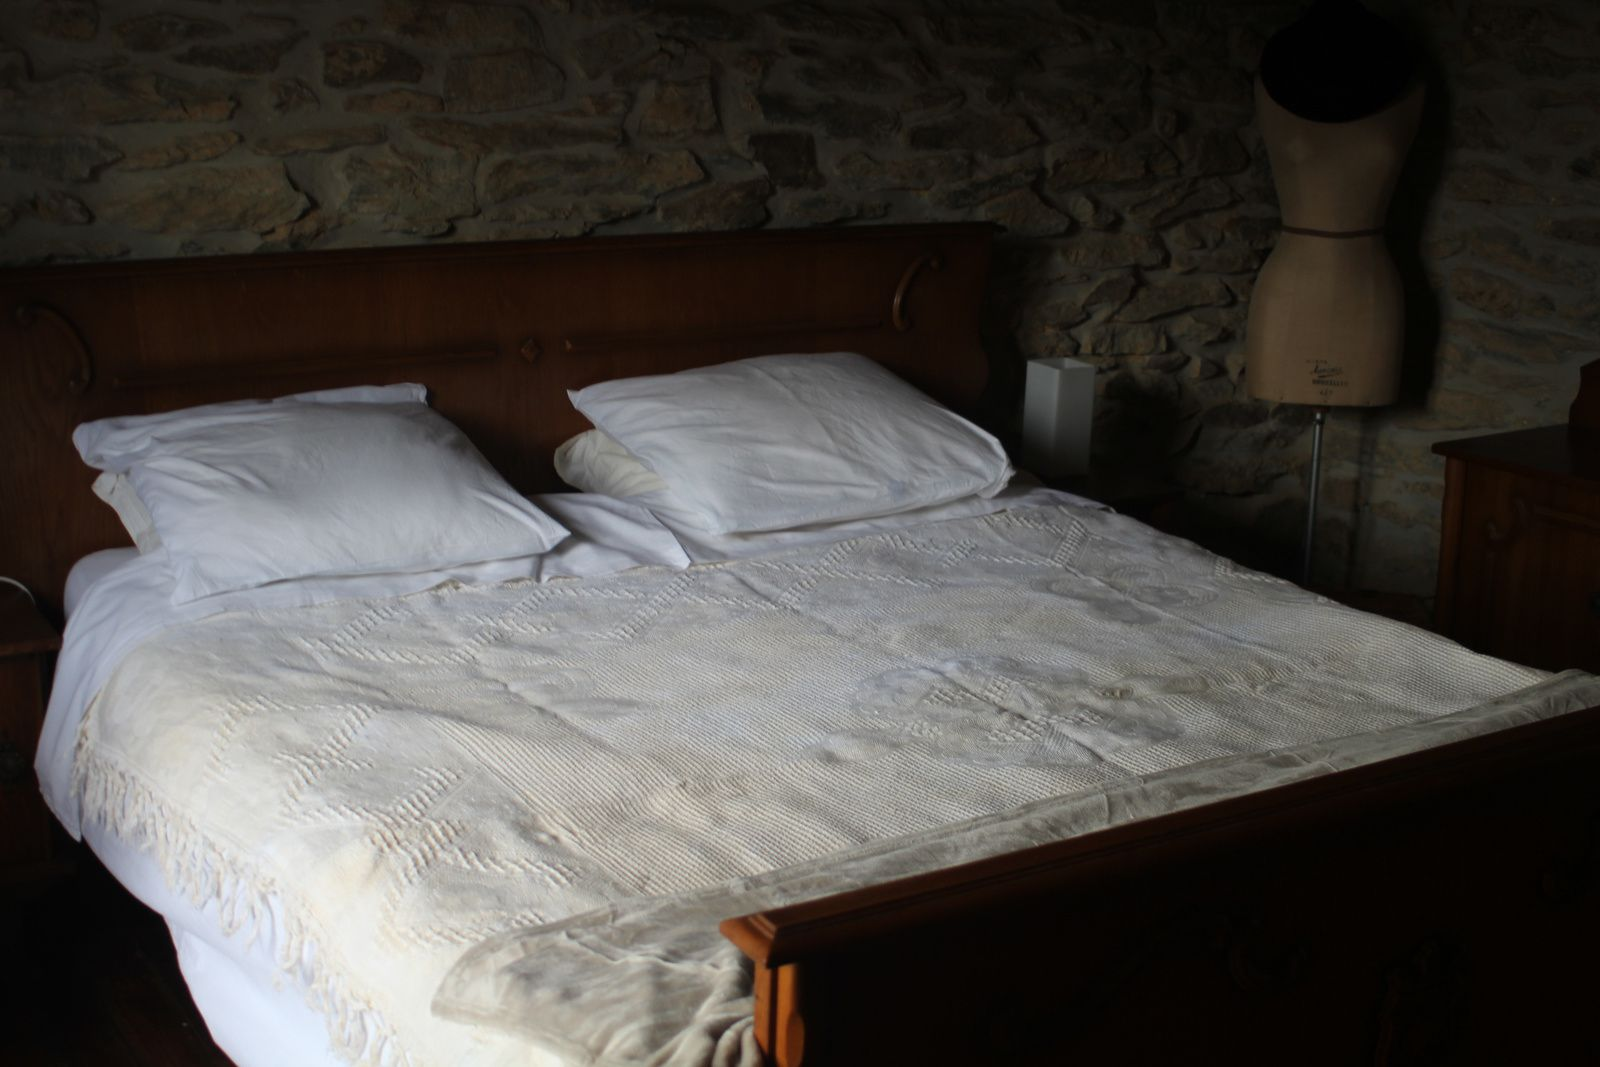 """On voit mieux le couvre-lit """"blanc"""" / We see better the """"white"""" bedcover"""